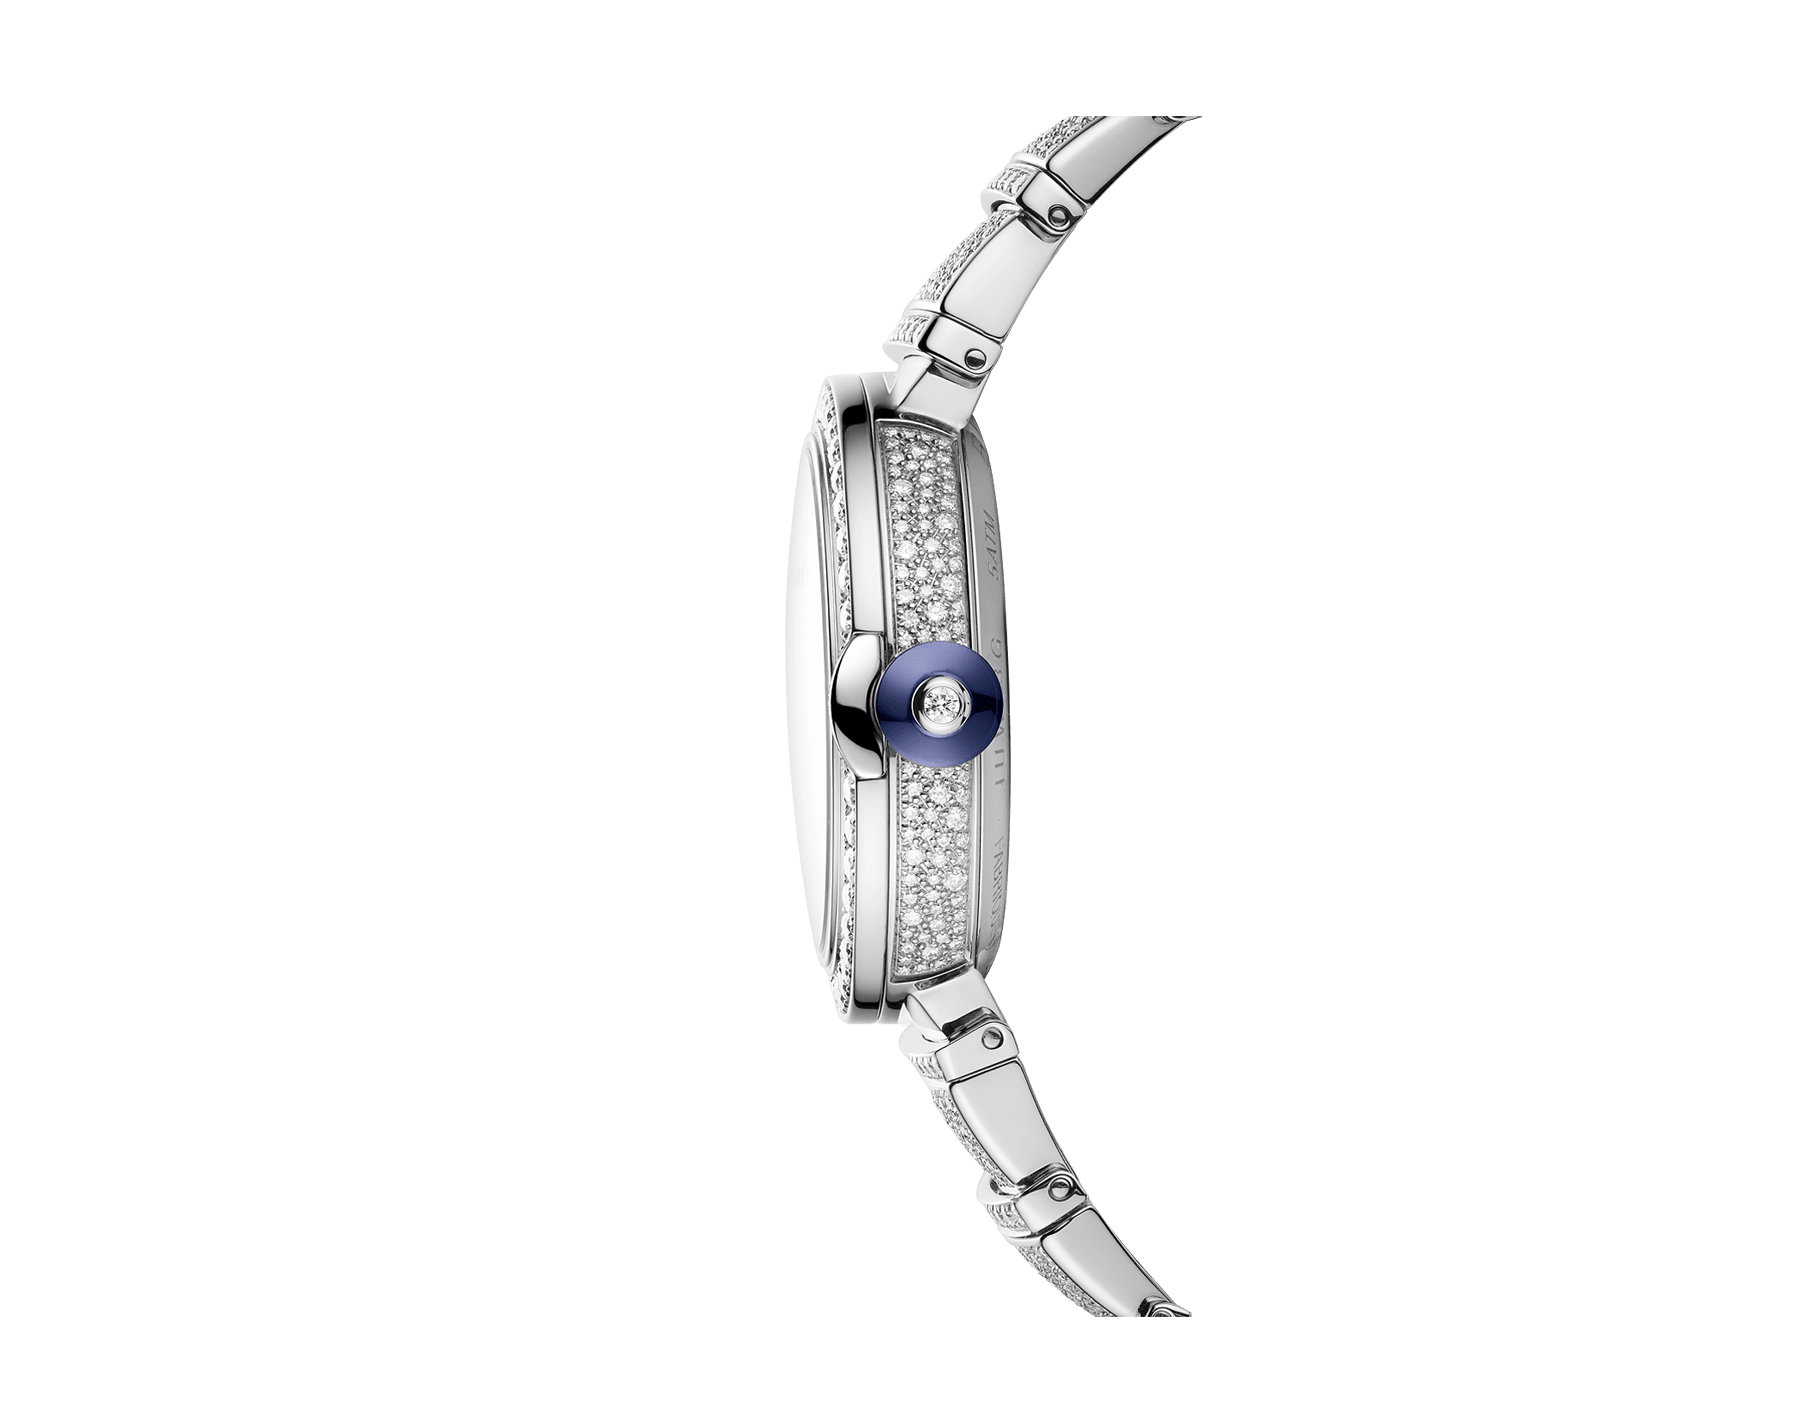 LVCEA watch in 18 kt white gold with brilliant-cut diamond set case and bracelet, and full pavé diamond dial. 102365 image 3